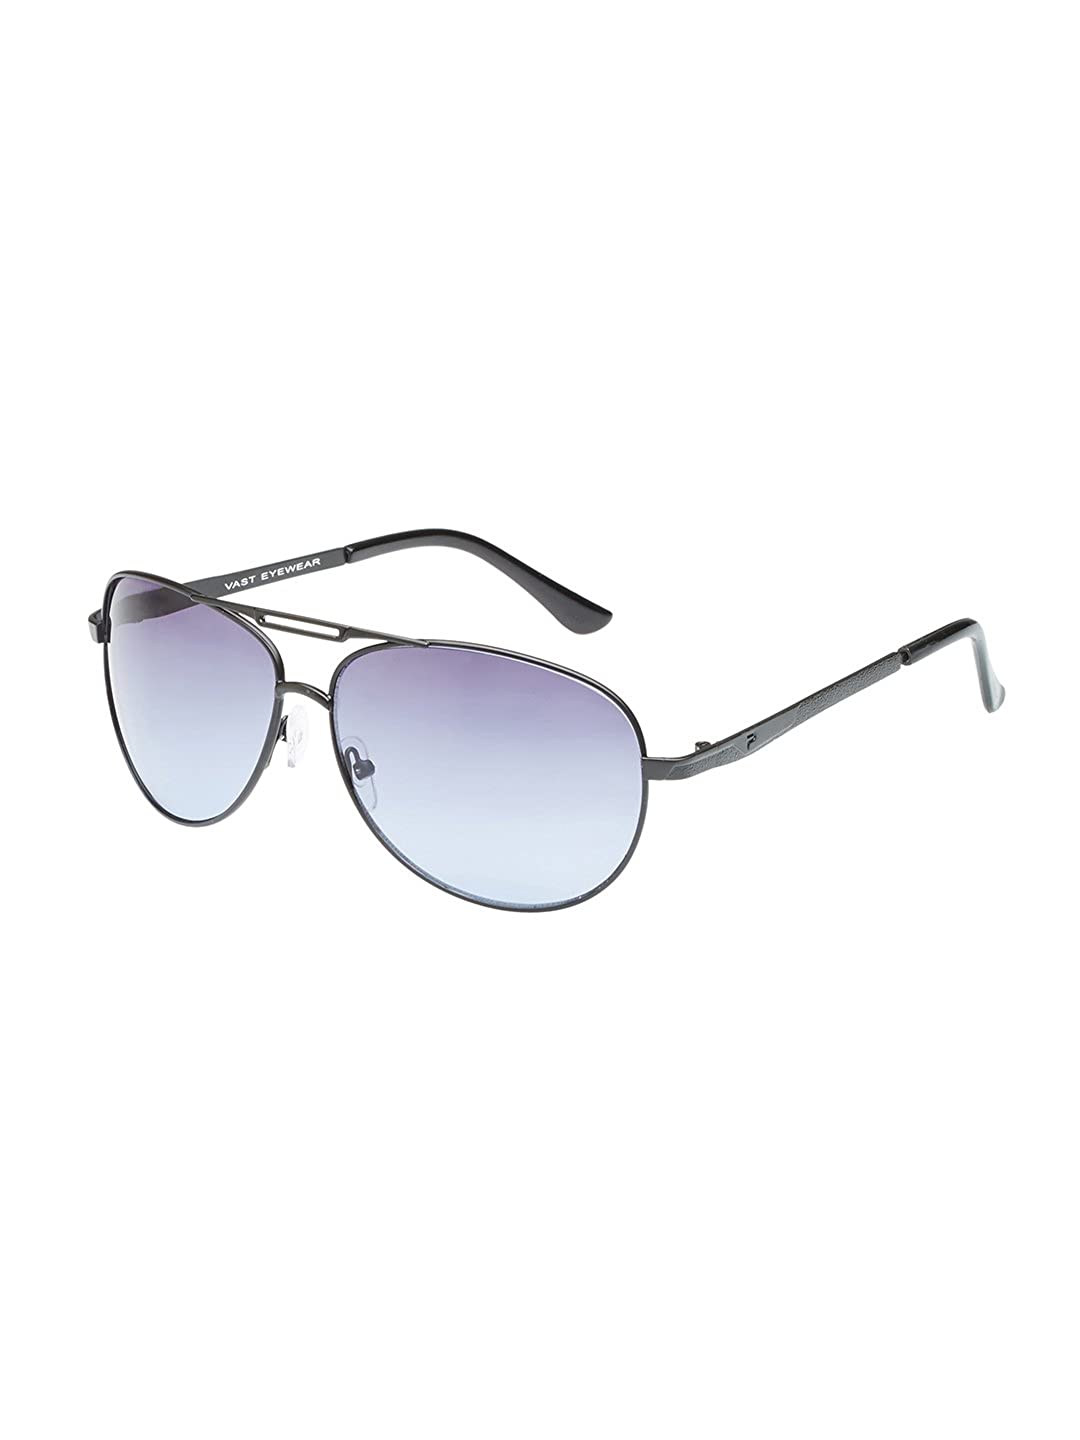 Vast UV Protection Aviator Men's And Women's Sunglasses